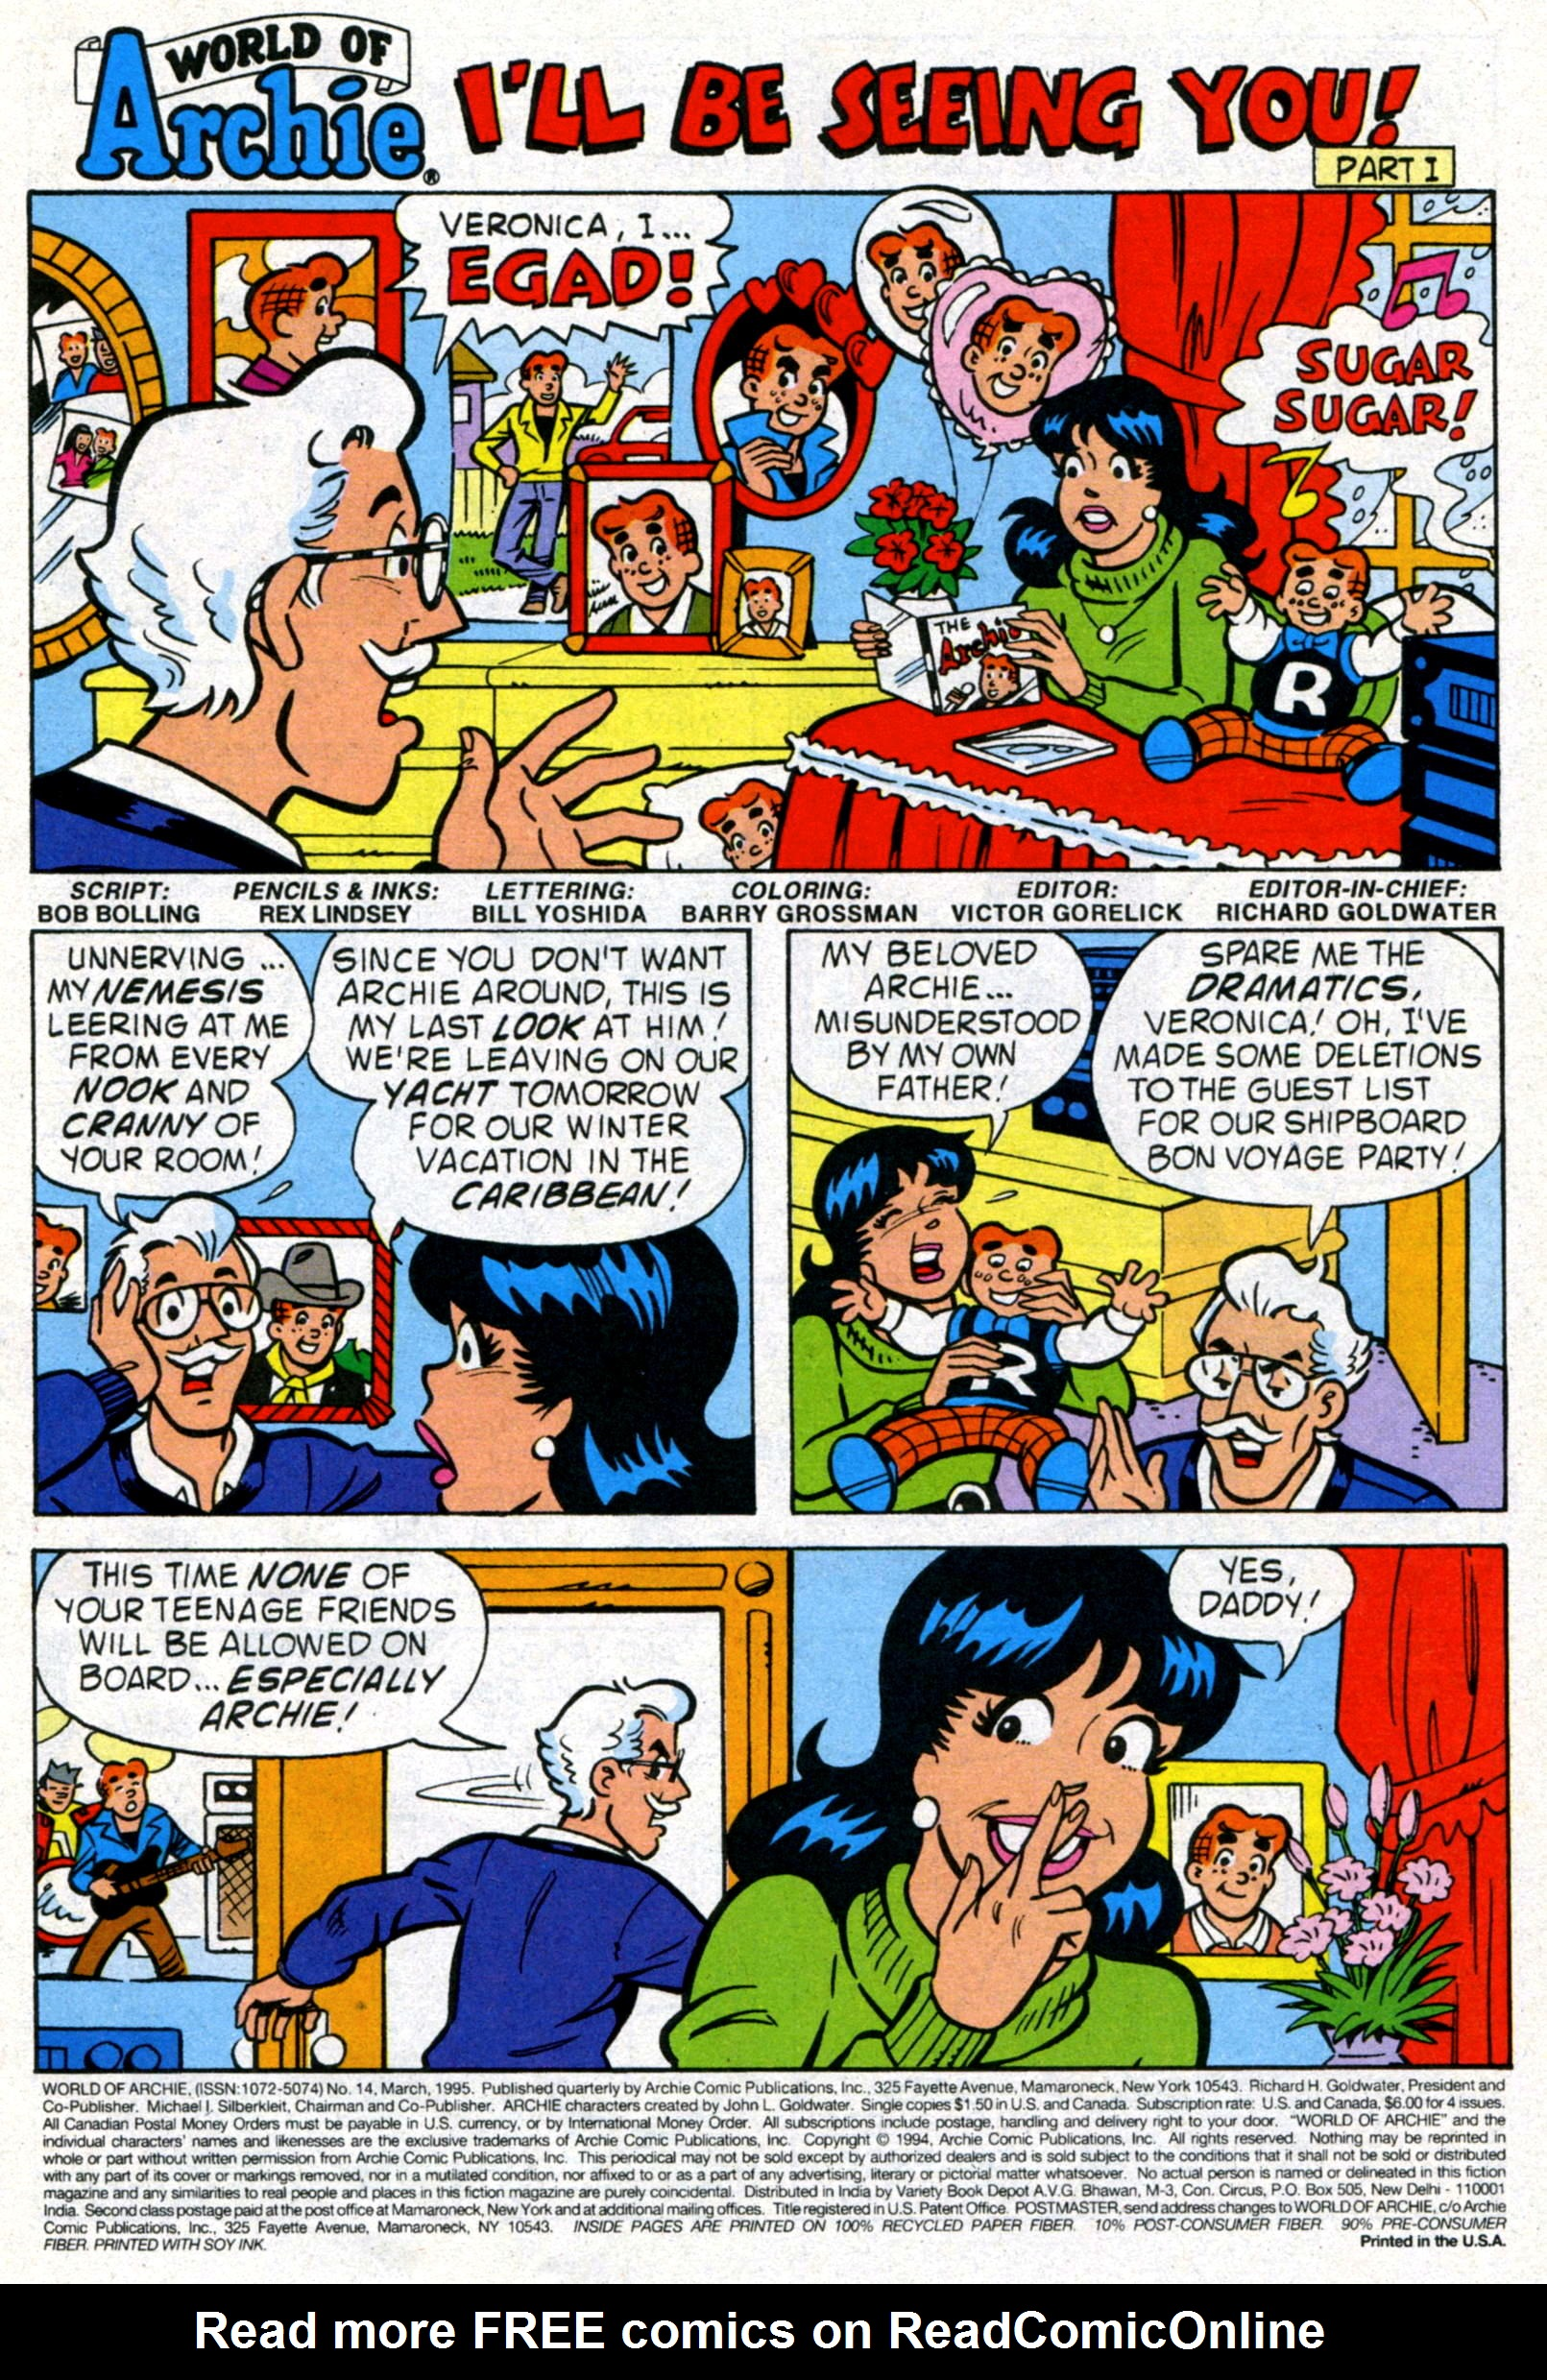 Read online World of Archie comic -  Issue #14 - 3